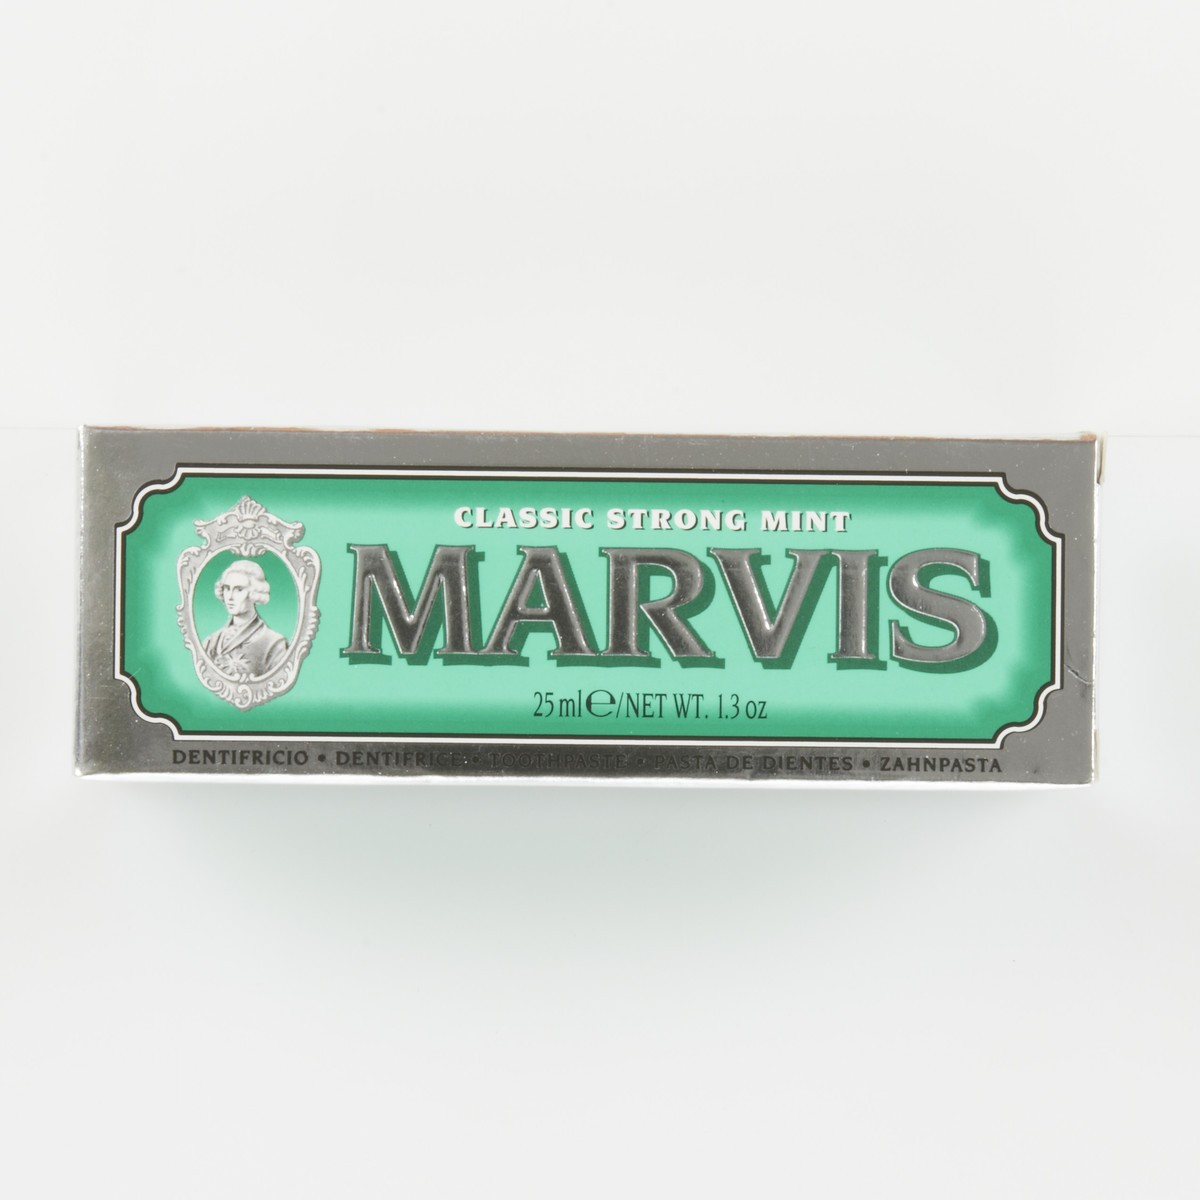 Marvis Dentifricio Classic Strong Mint